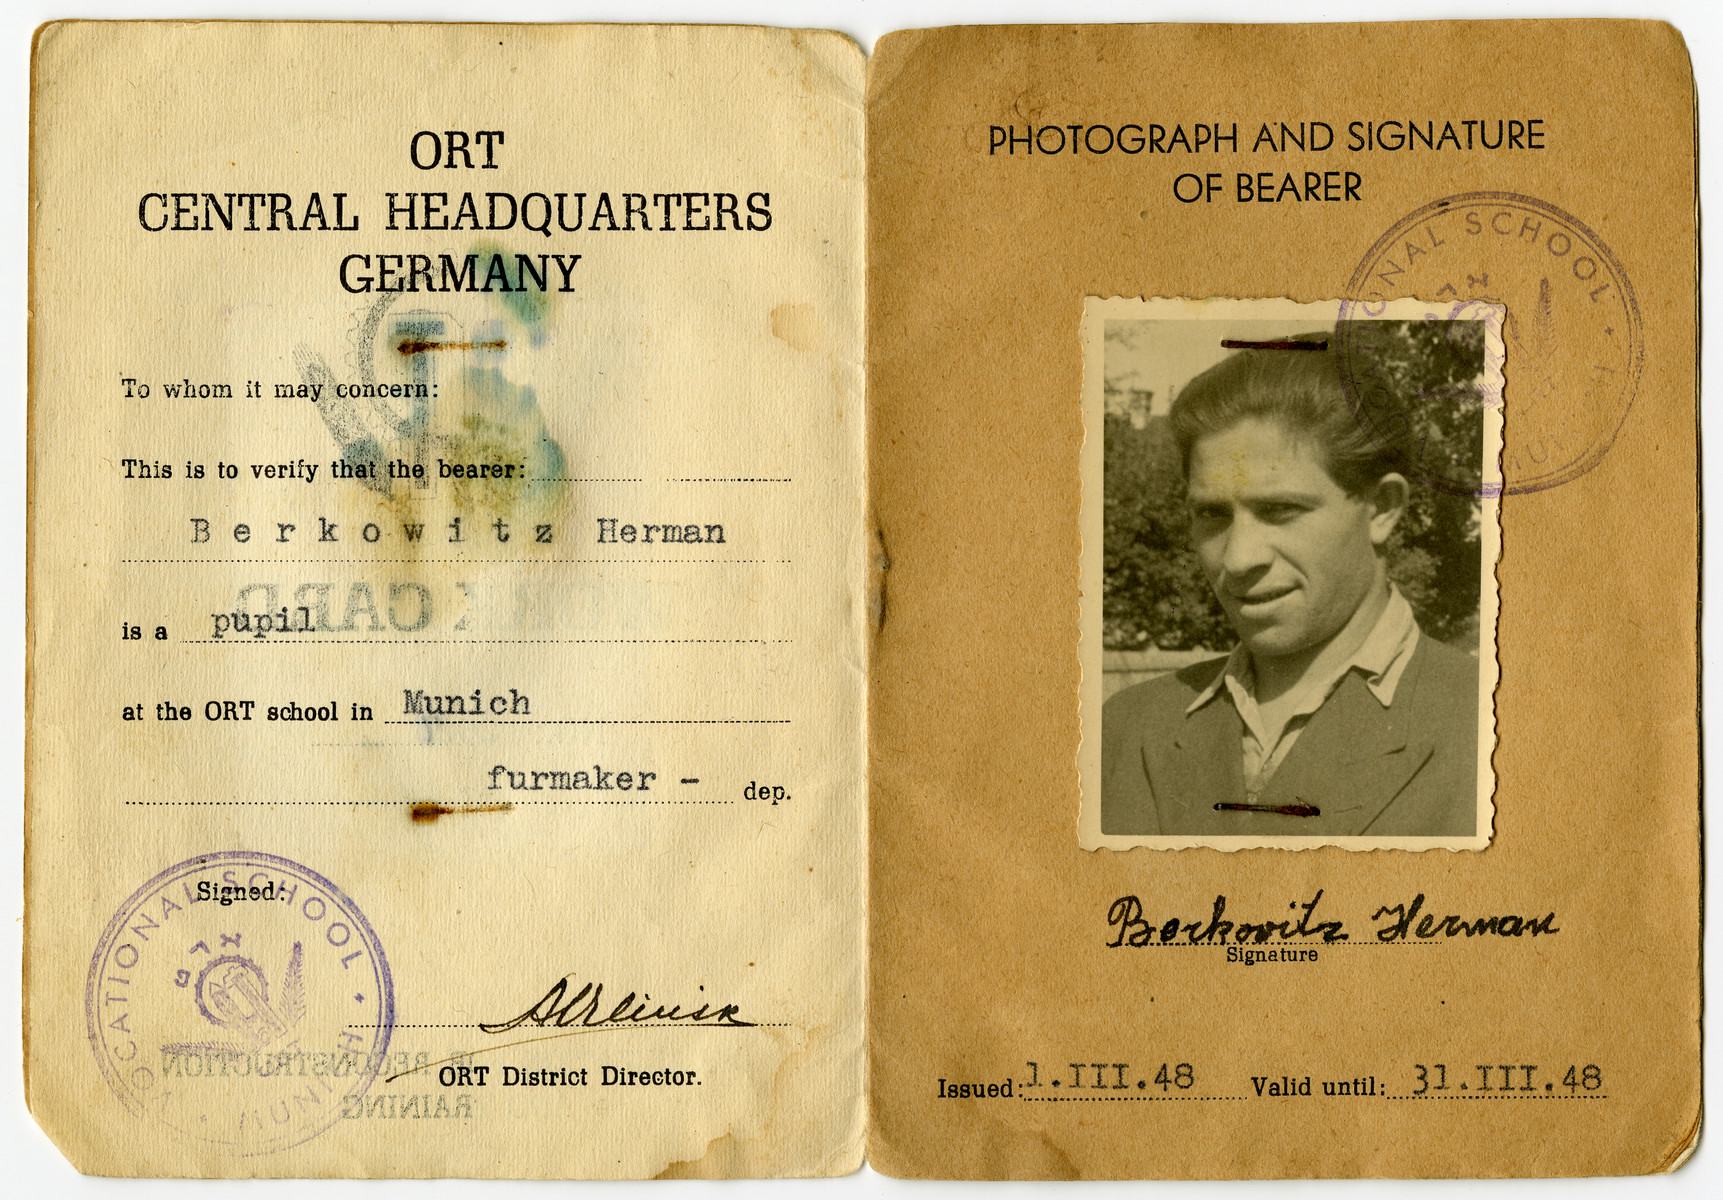 Herman Berkowitz's identification papers for the Organization for Reconstruction and Training (ORT) furmaking class in Munich.